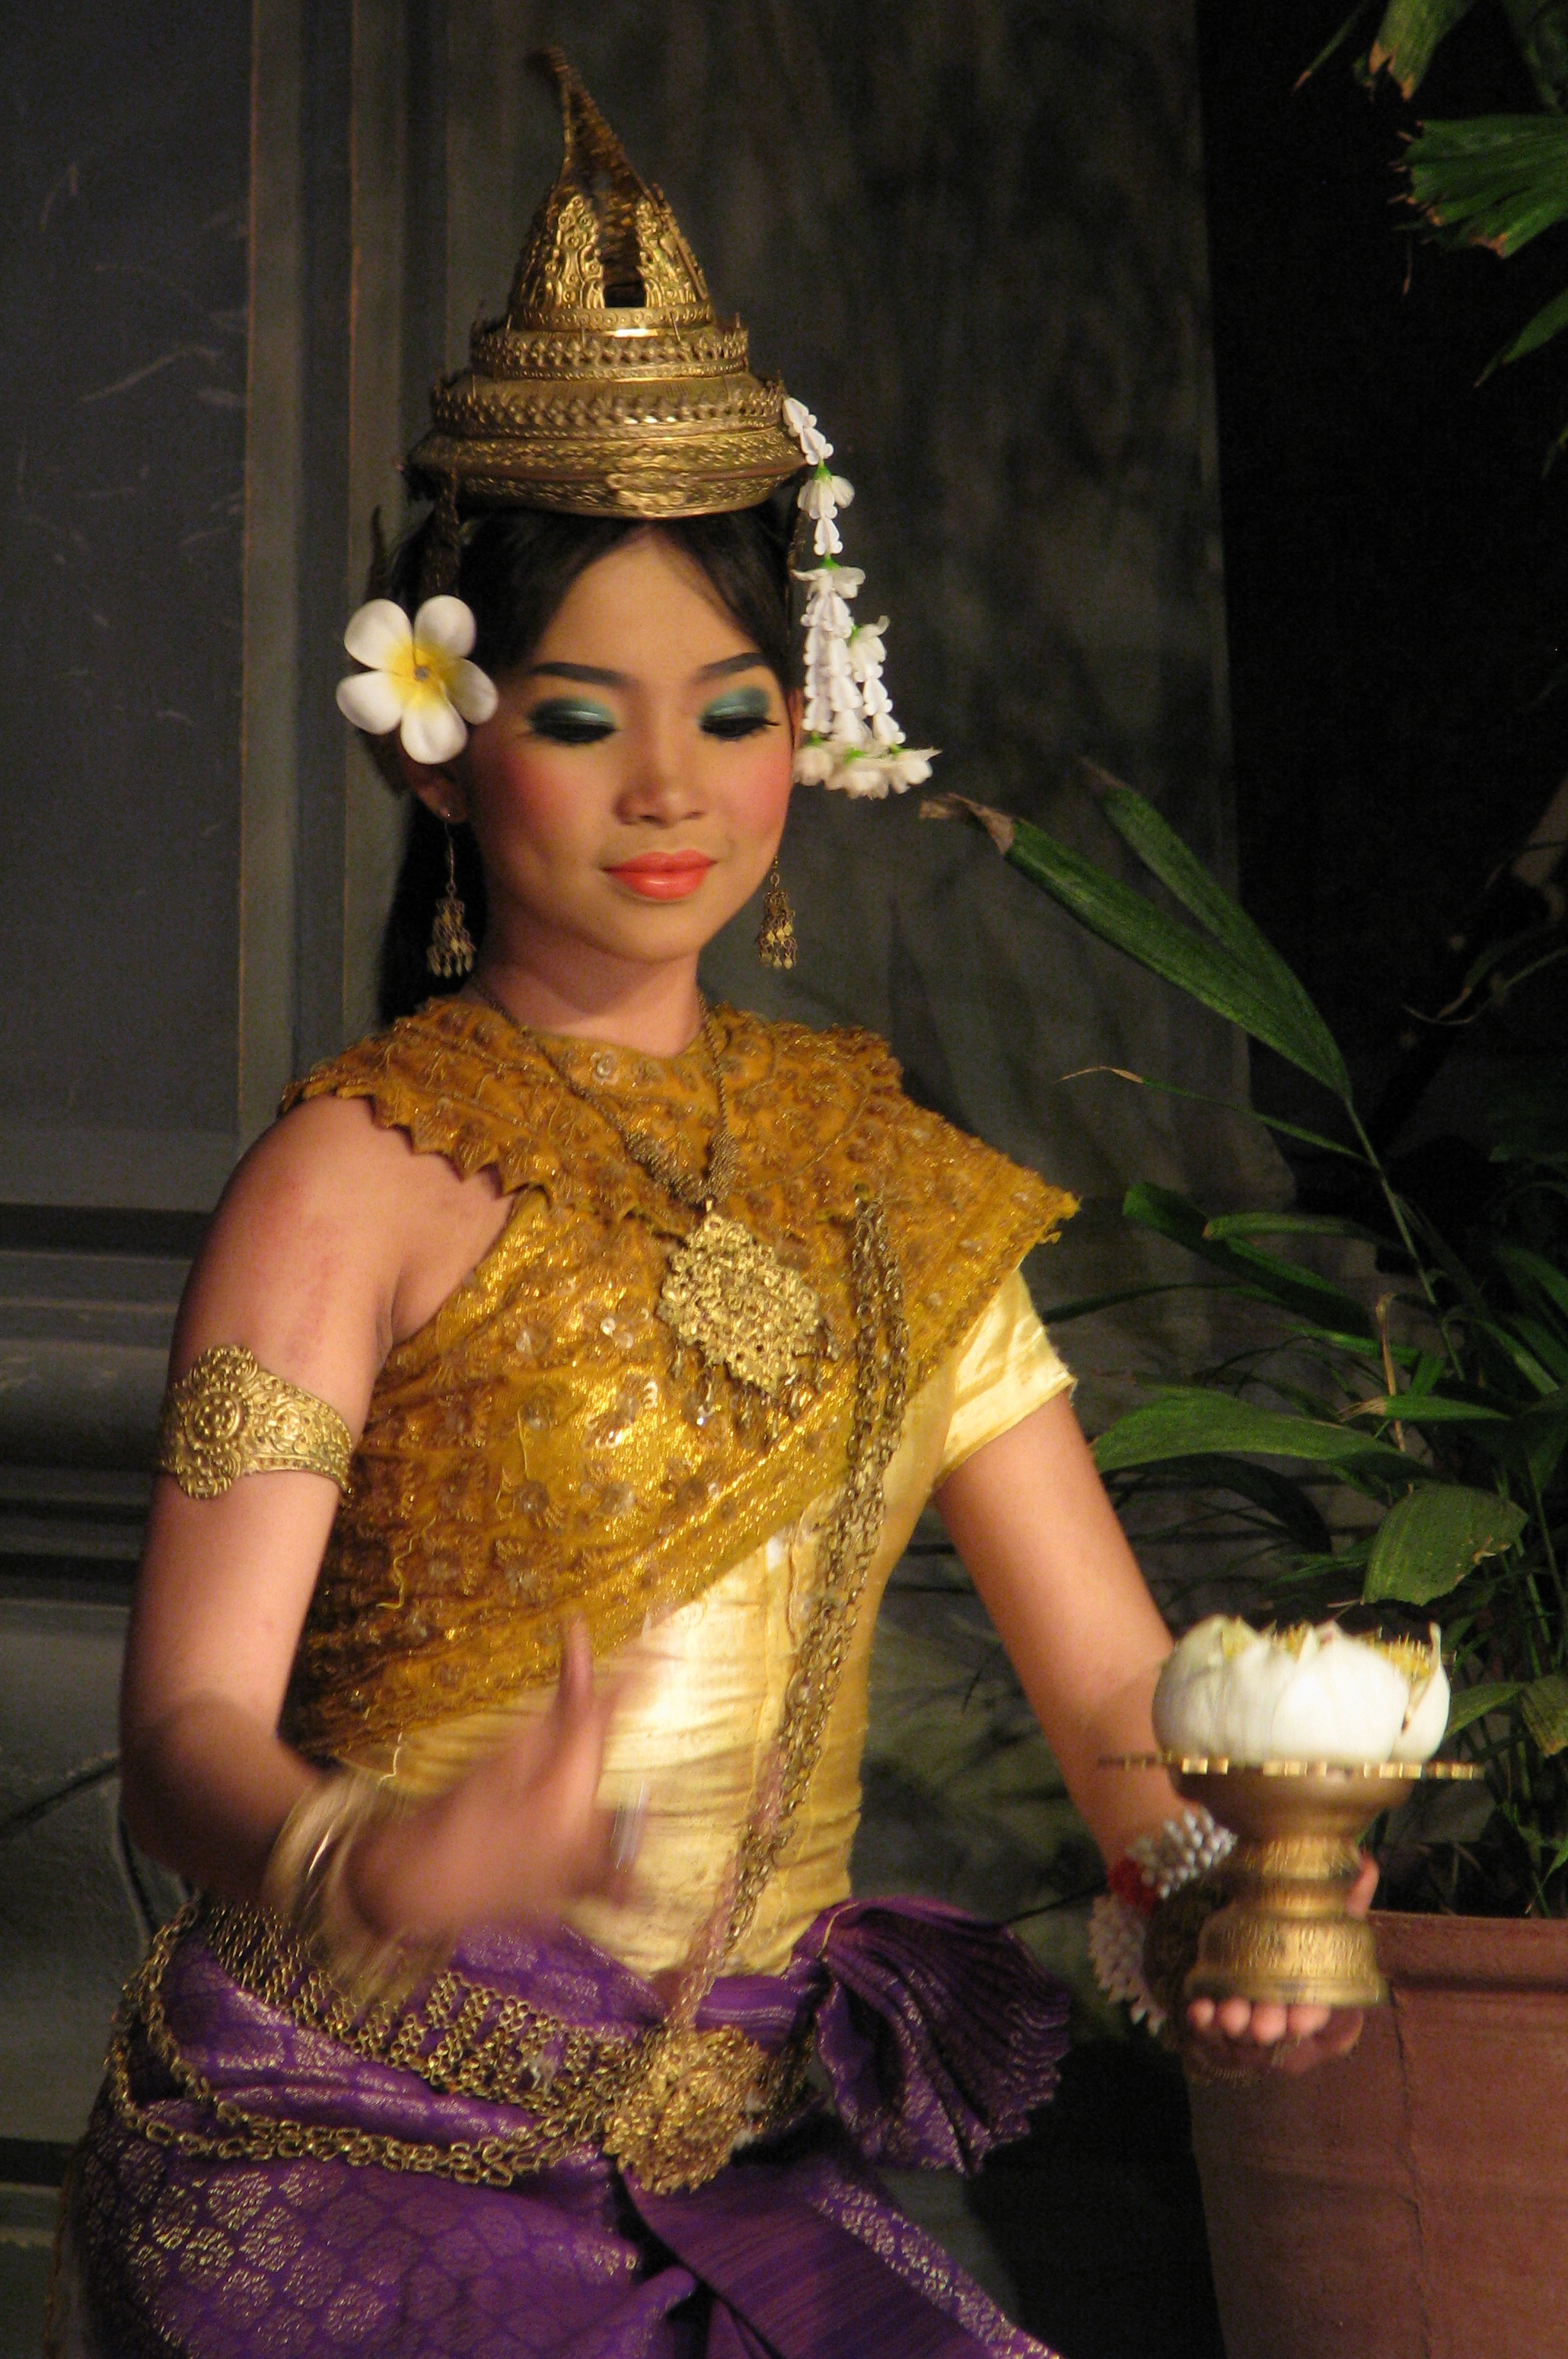 khmer apsara pictures - HD2060×3099